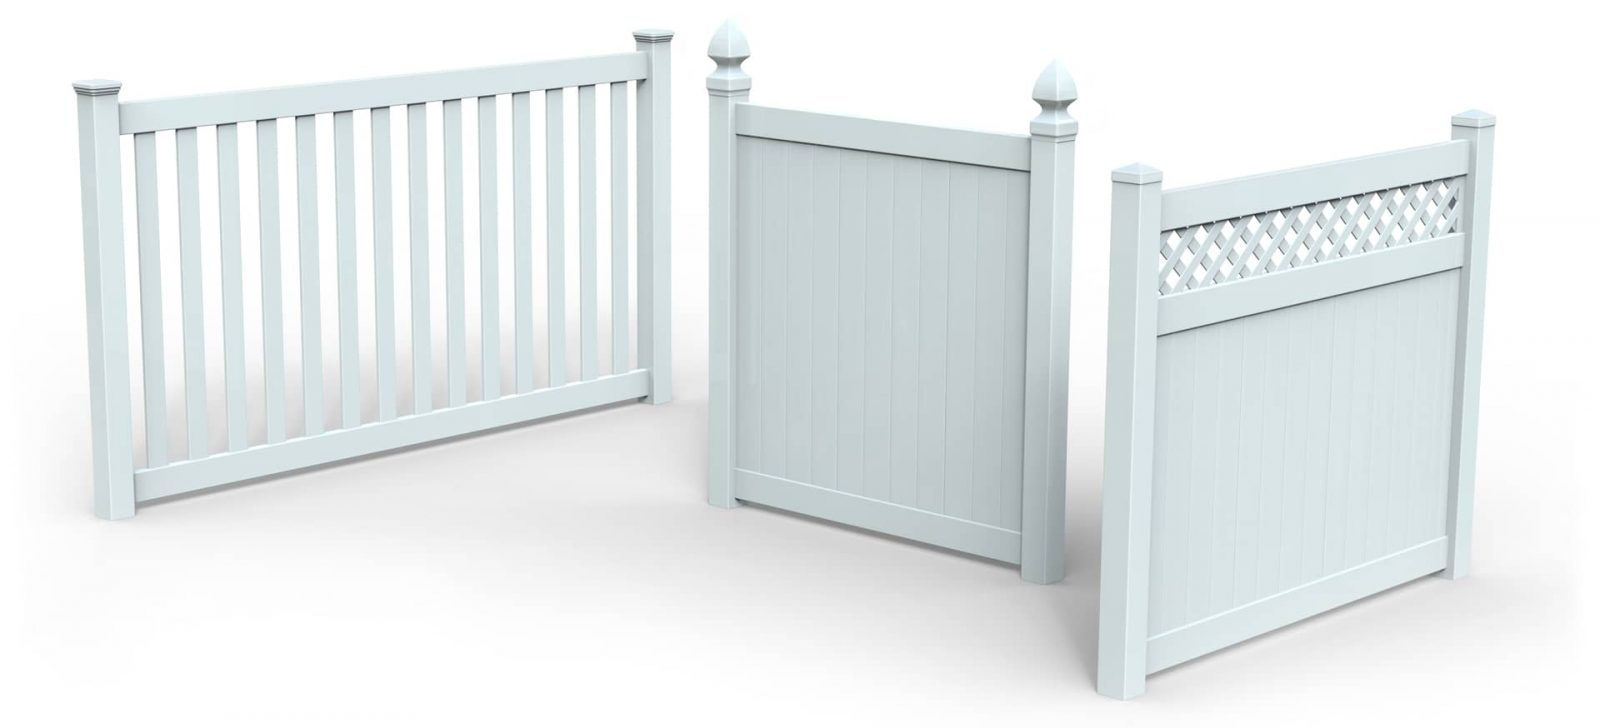 White Vinyl Fence Privacy Panels